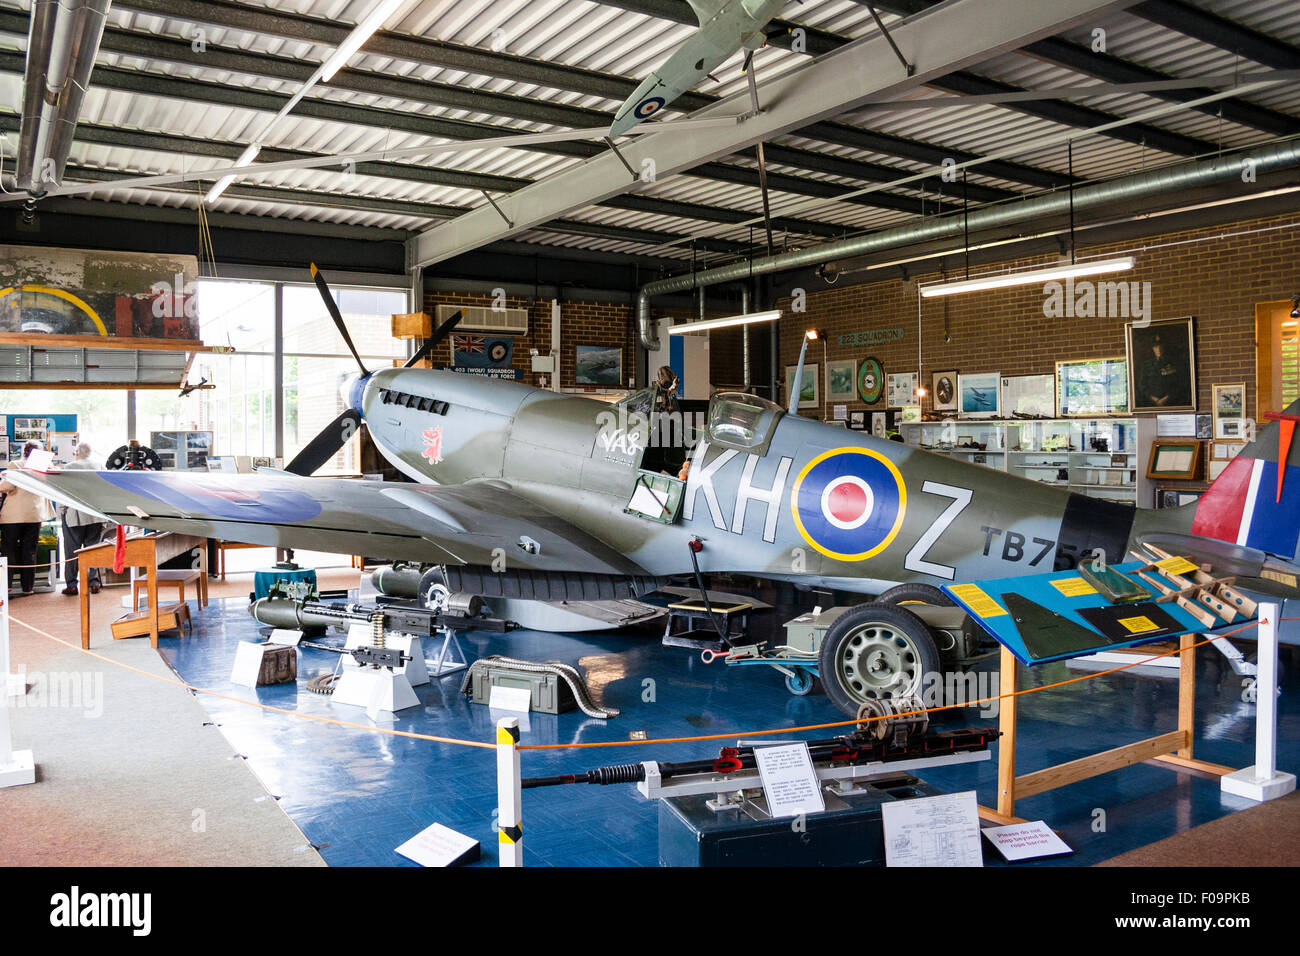 England, Ramsgate. RAF Manston Spitfire and Hurricane Memorial museum. Interior. Spitfire displayed with various - Stock Image